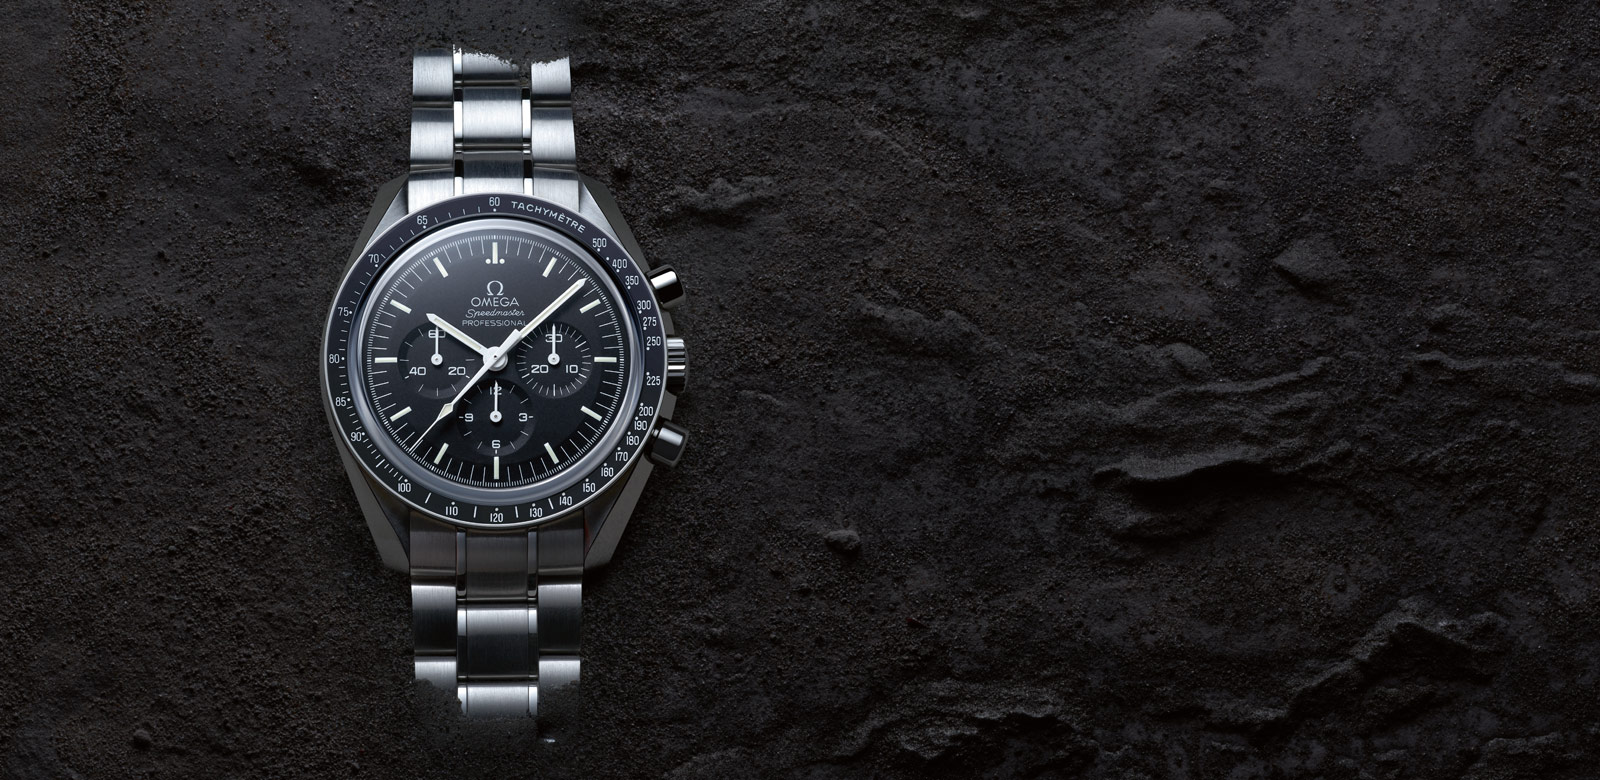 The first watch worn on the moon